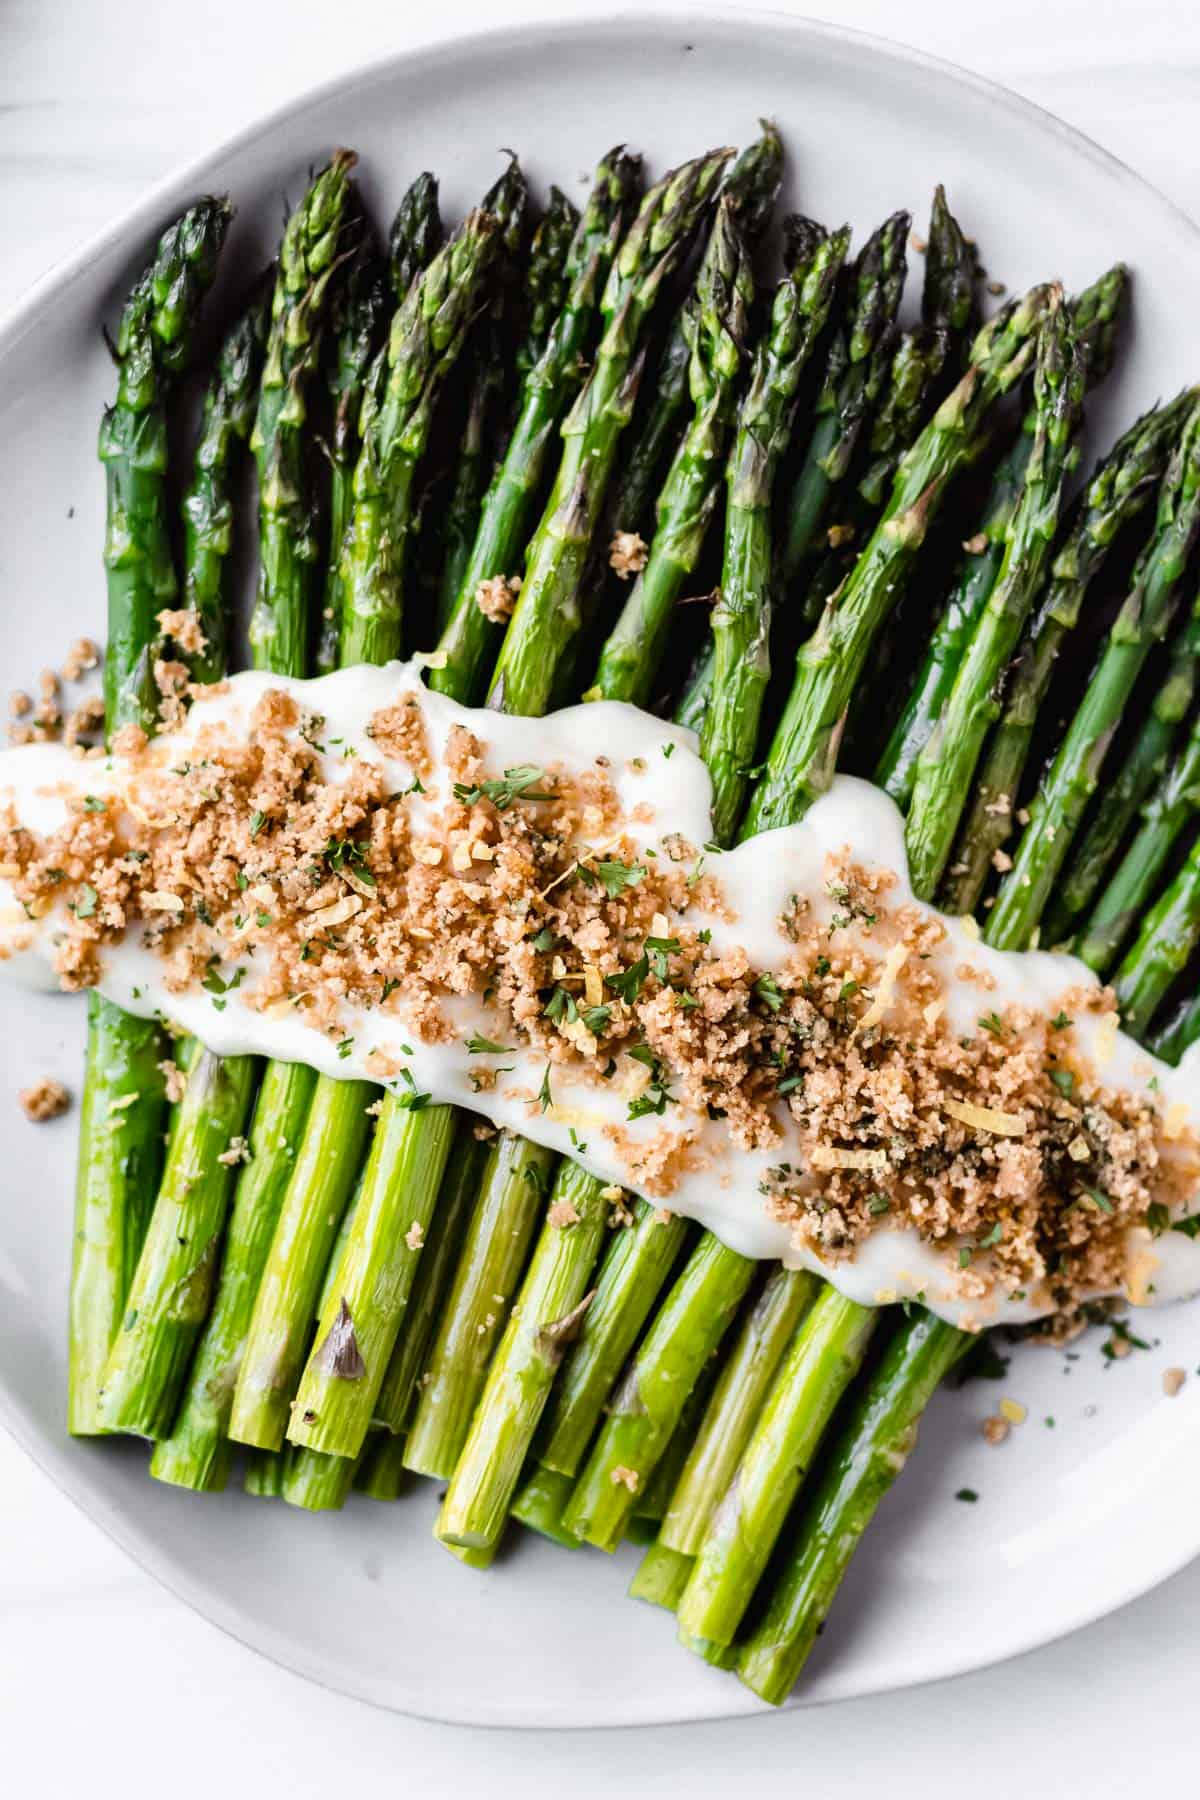 Overhead view of broiled asparagus with parmesan cheese sauce and almond flour crumbs on a white plate over a white background